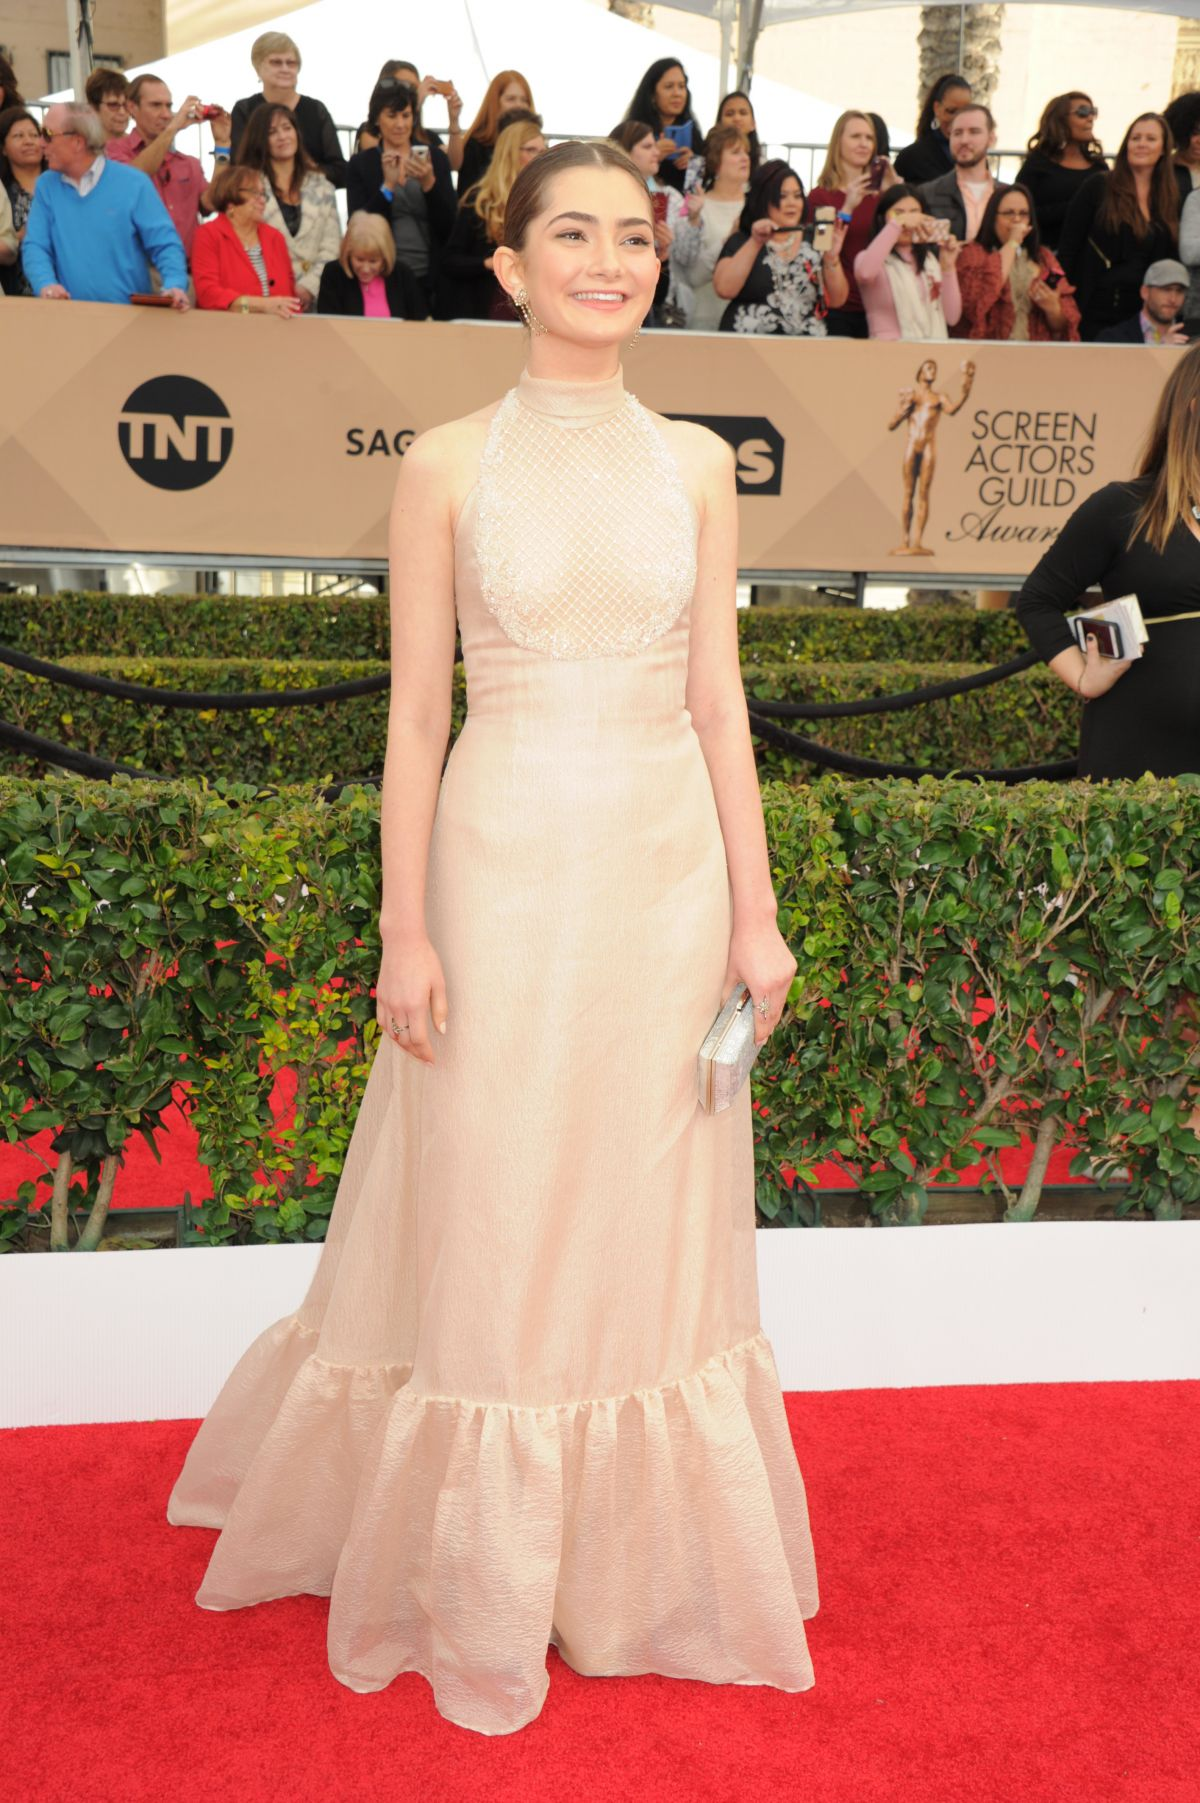 EMILY ROBINSON at Screen Actors Guild Awards 2016 in Los Angeles 01/30/2016